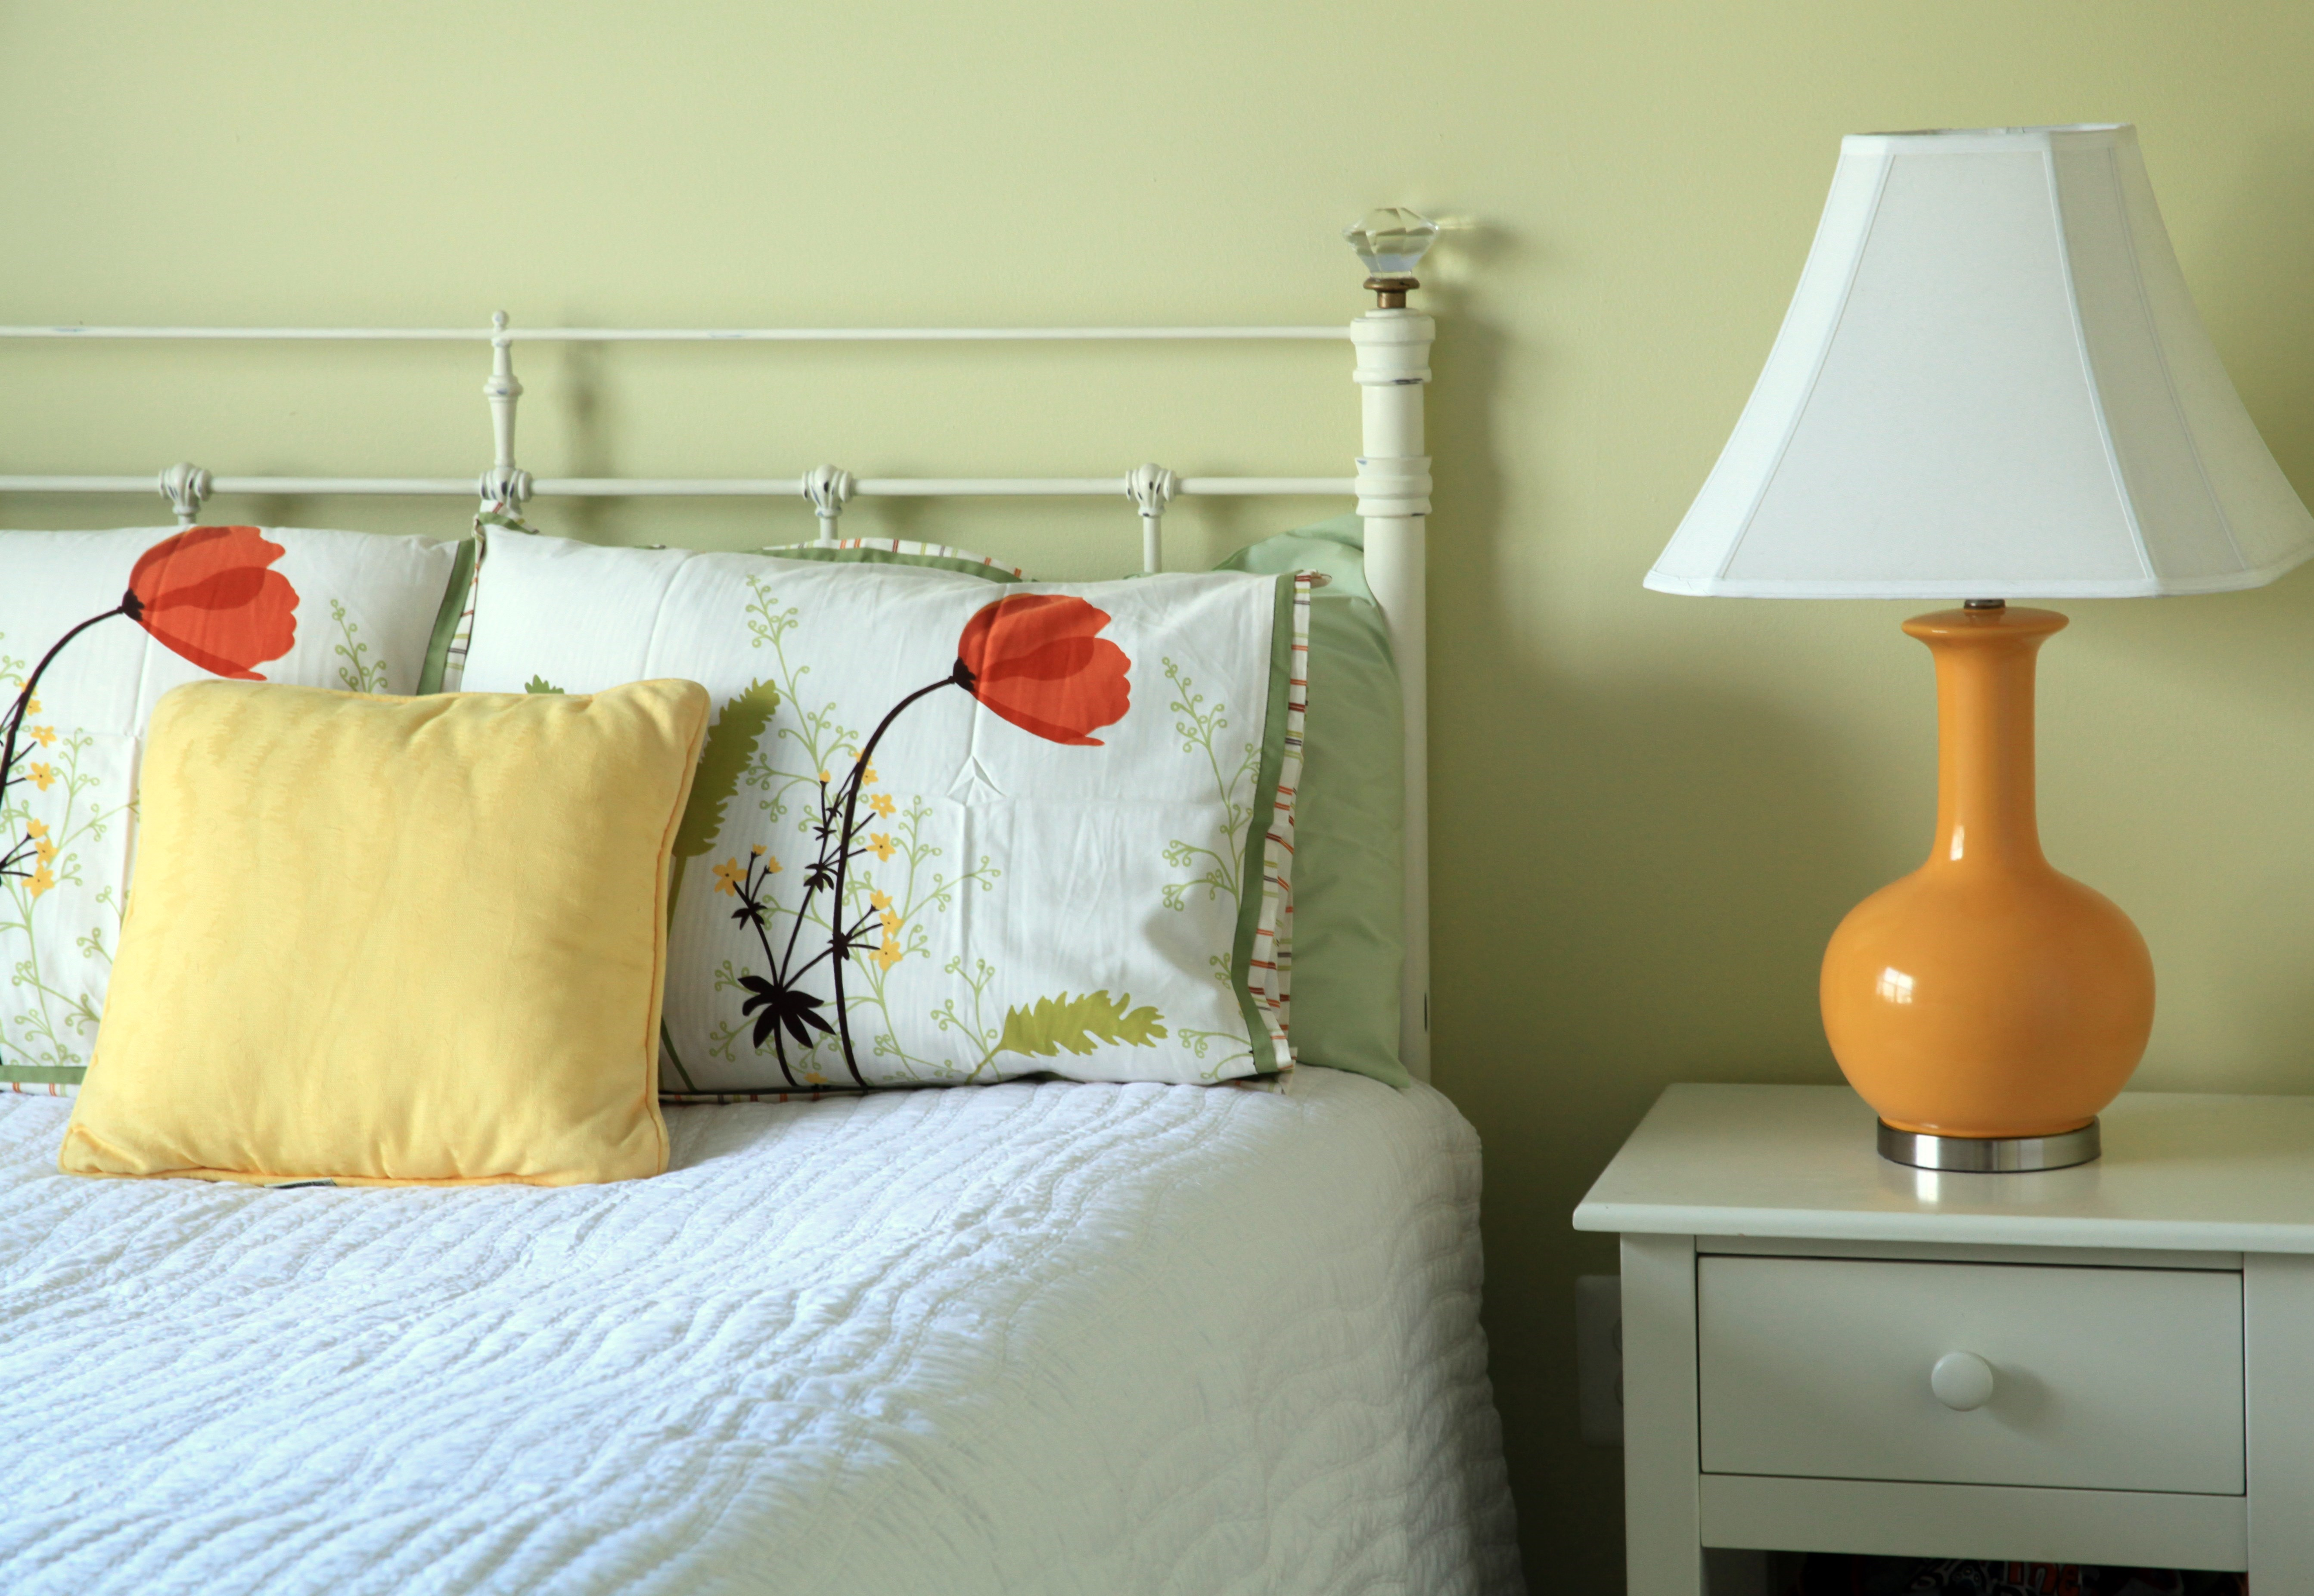 Spring bedroom makeover afternoon artist - Spring bedding makeover ideas ...